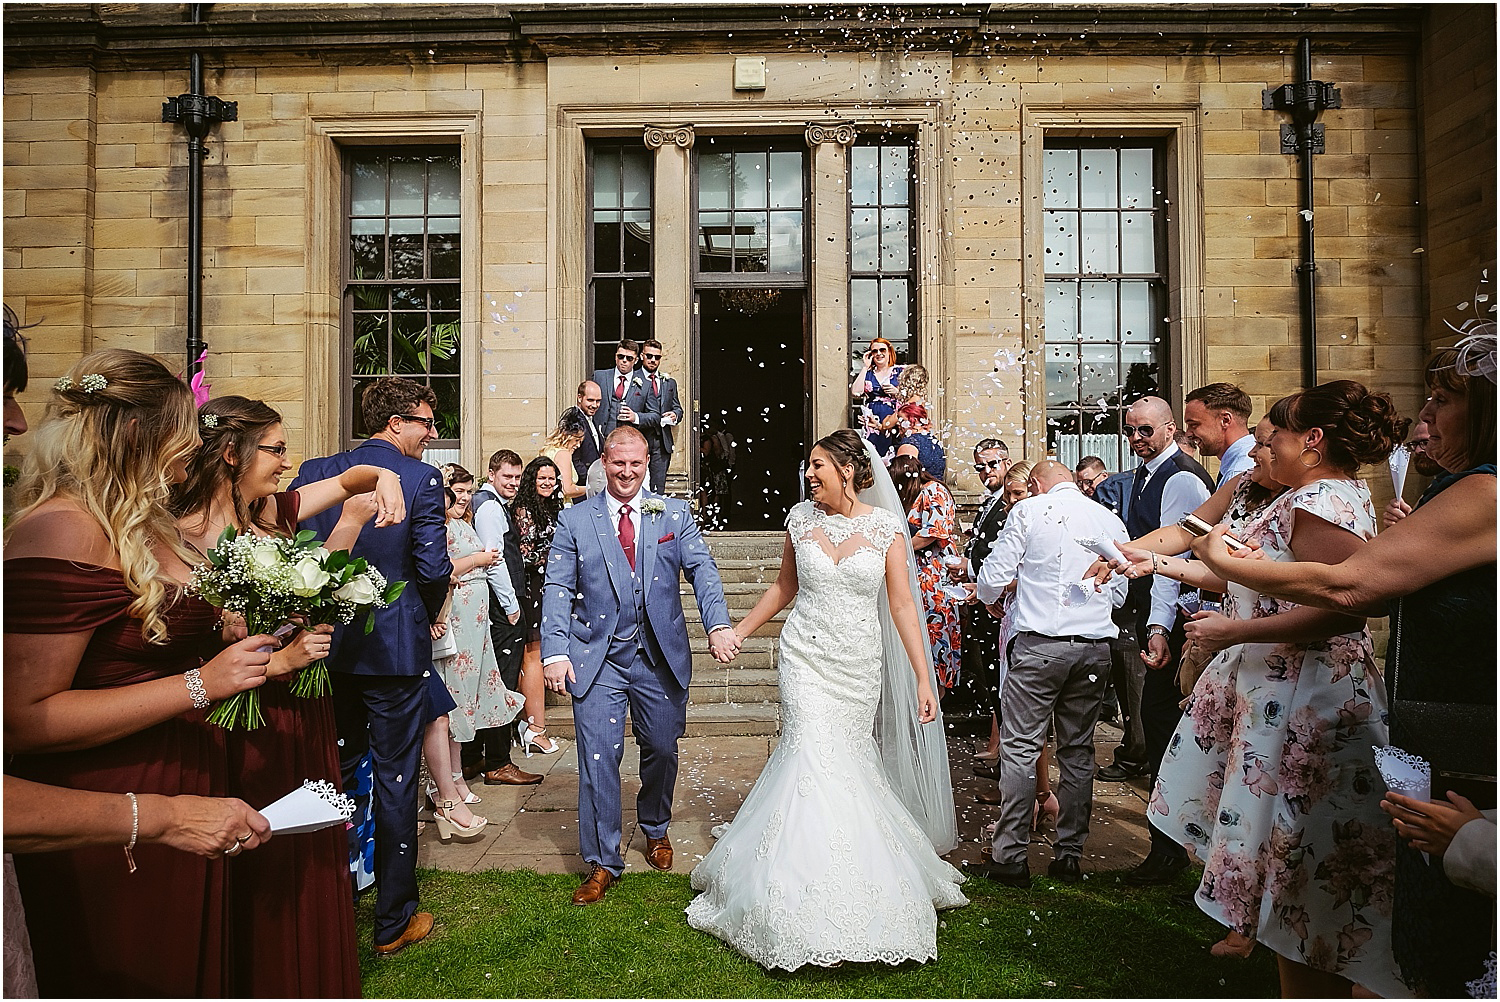 Wedding at Beamish Hall - wedding photography by www.2tonephotography.co.uk 161.jpg